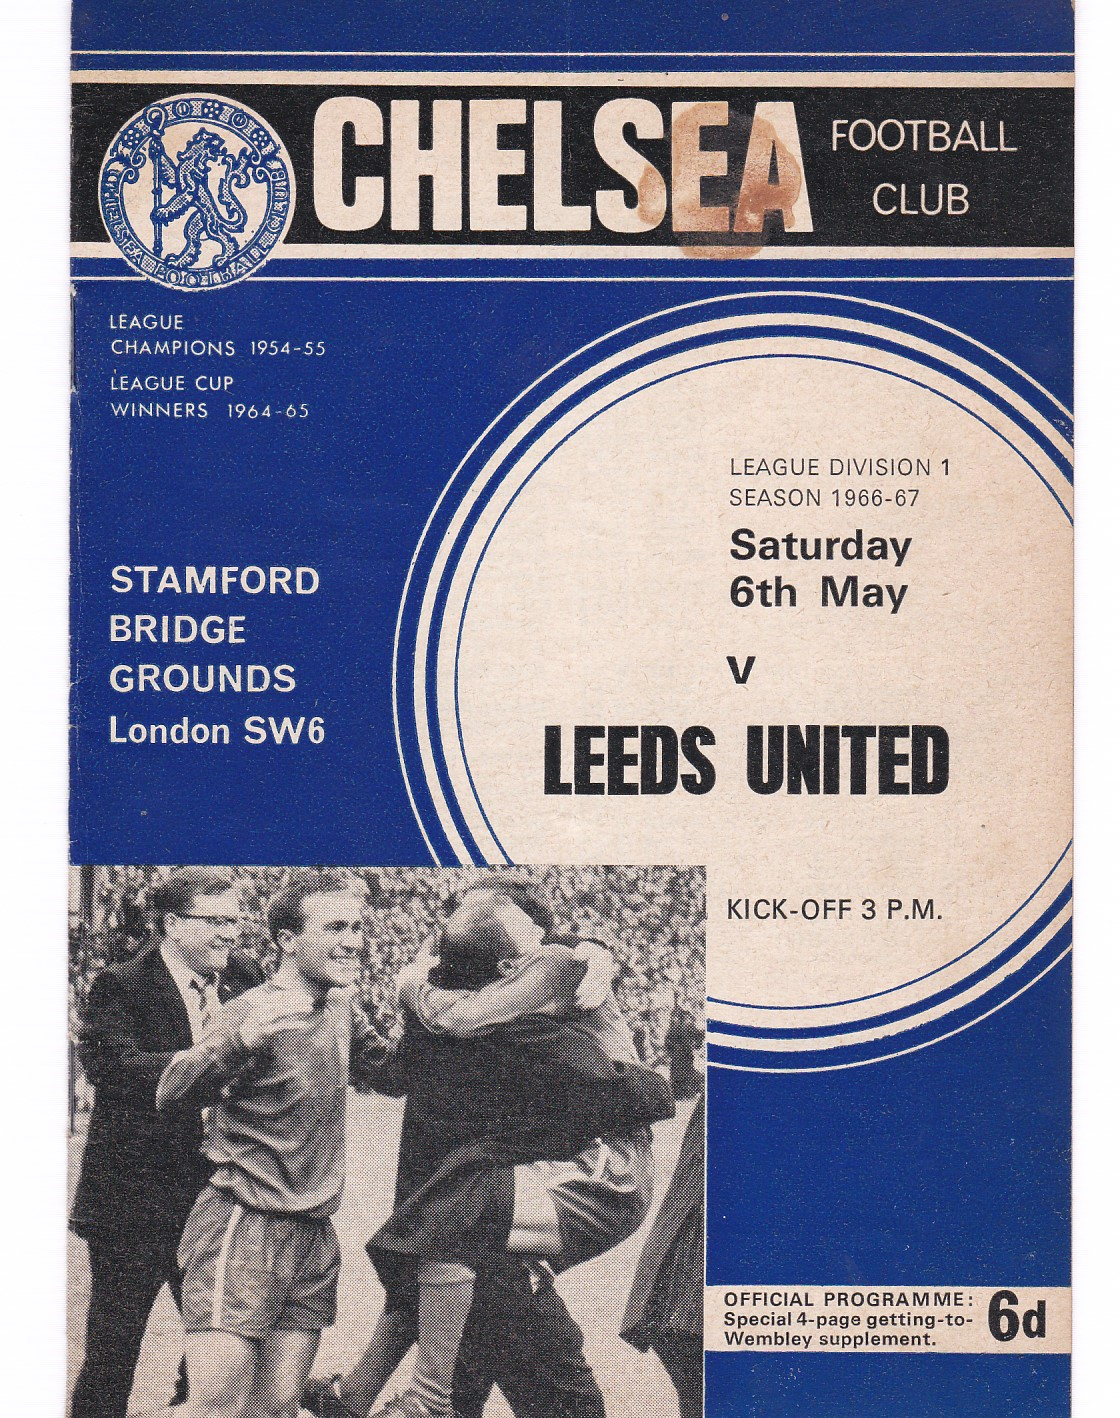 Chelsea v Leeds United 1967 May 6th League vertical crease brown mark front cover score and team